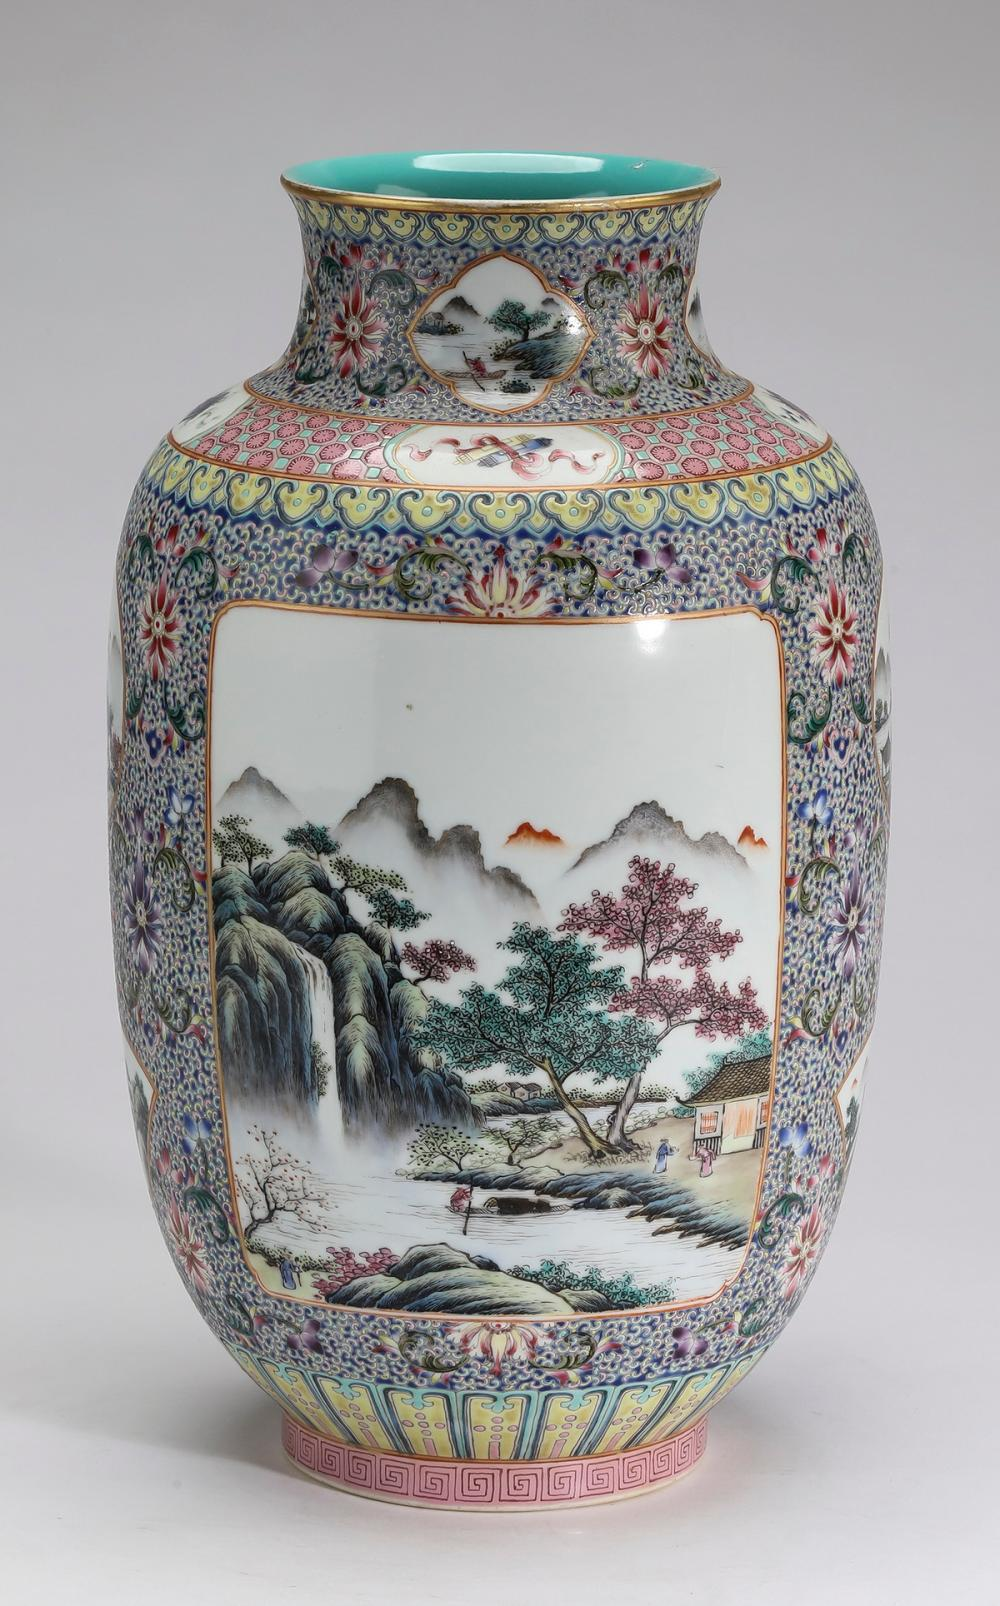 Chinese famille rose vase with landscape scenes